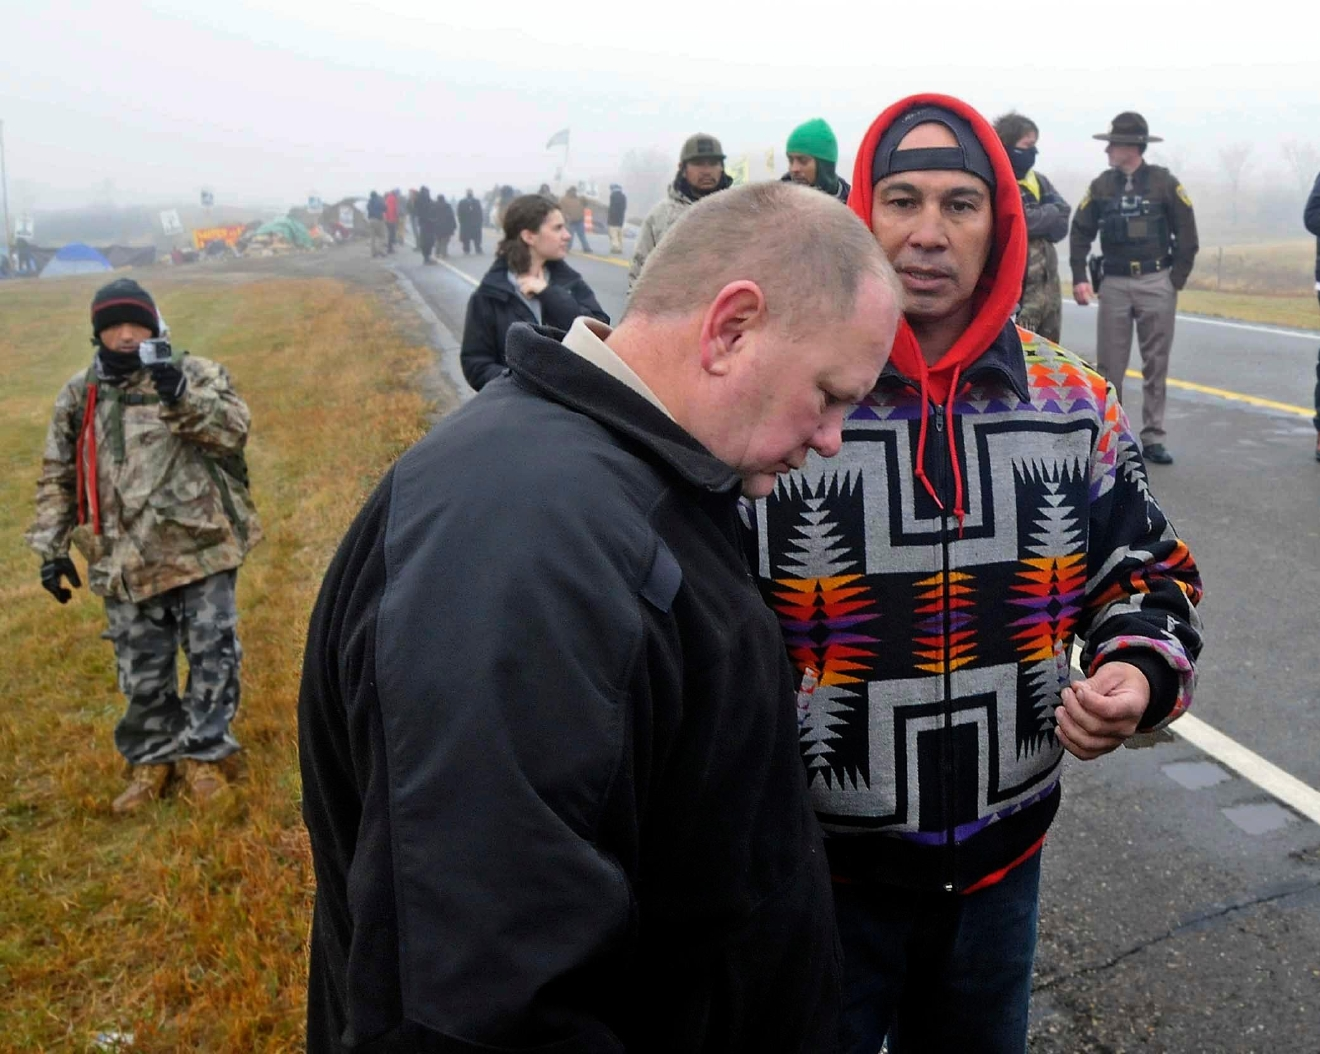 Morton County Sheriff Kyle Kirchmeier, front, listens to Brian Wesley Horinek, of Oklahoma, outside the New Camp on Pipeline Easement in North Dakota on Wednesday, Oct. 26, 2016. Sheriff Kirchmeier and Cass County Sheriff Paul Laney were at the site where a human barricade stopped traffic on North Dakota Highway 1806. The prospect of a police raid on an encampment protesting the Dakota Access pipeline faded as night fell Wednesday, with law enforcement making no immediate move after protesters rejected their request to withdraw from private land. Activists fear the nearly 1,200-mile pipeline could harm cultural sites and drinking water for the Standing Rock Sioux tribe. (Tom Stromme/The Bismarck Tribune via AP)